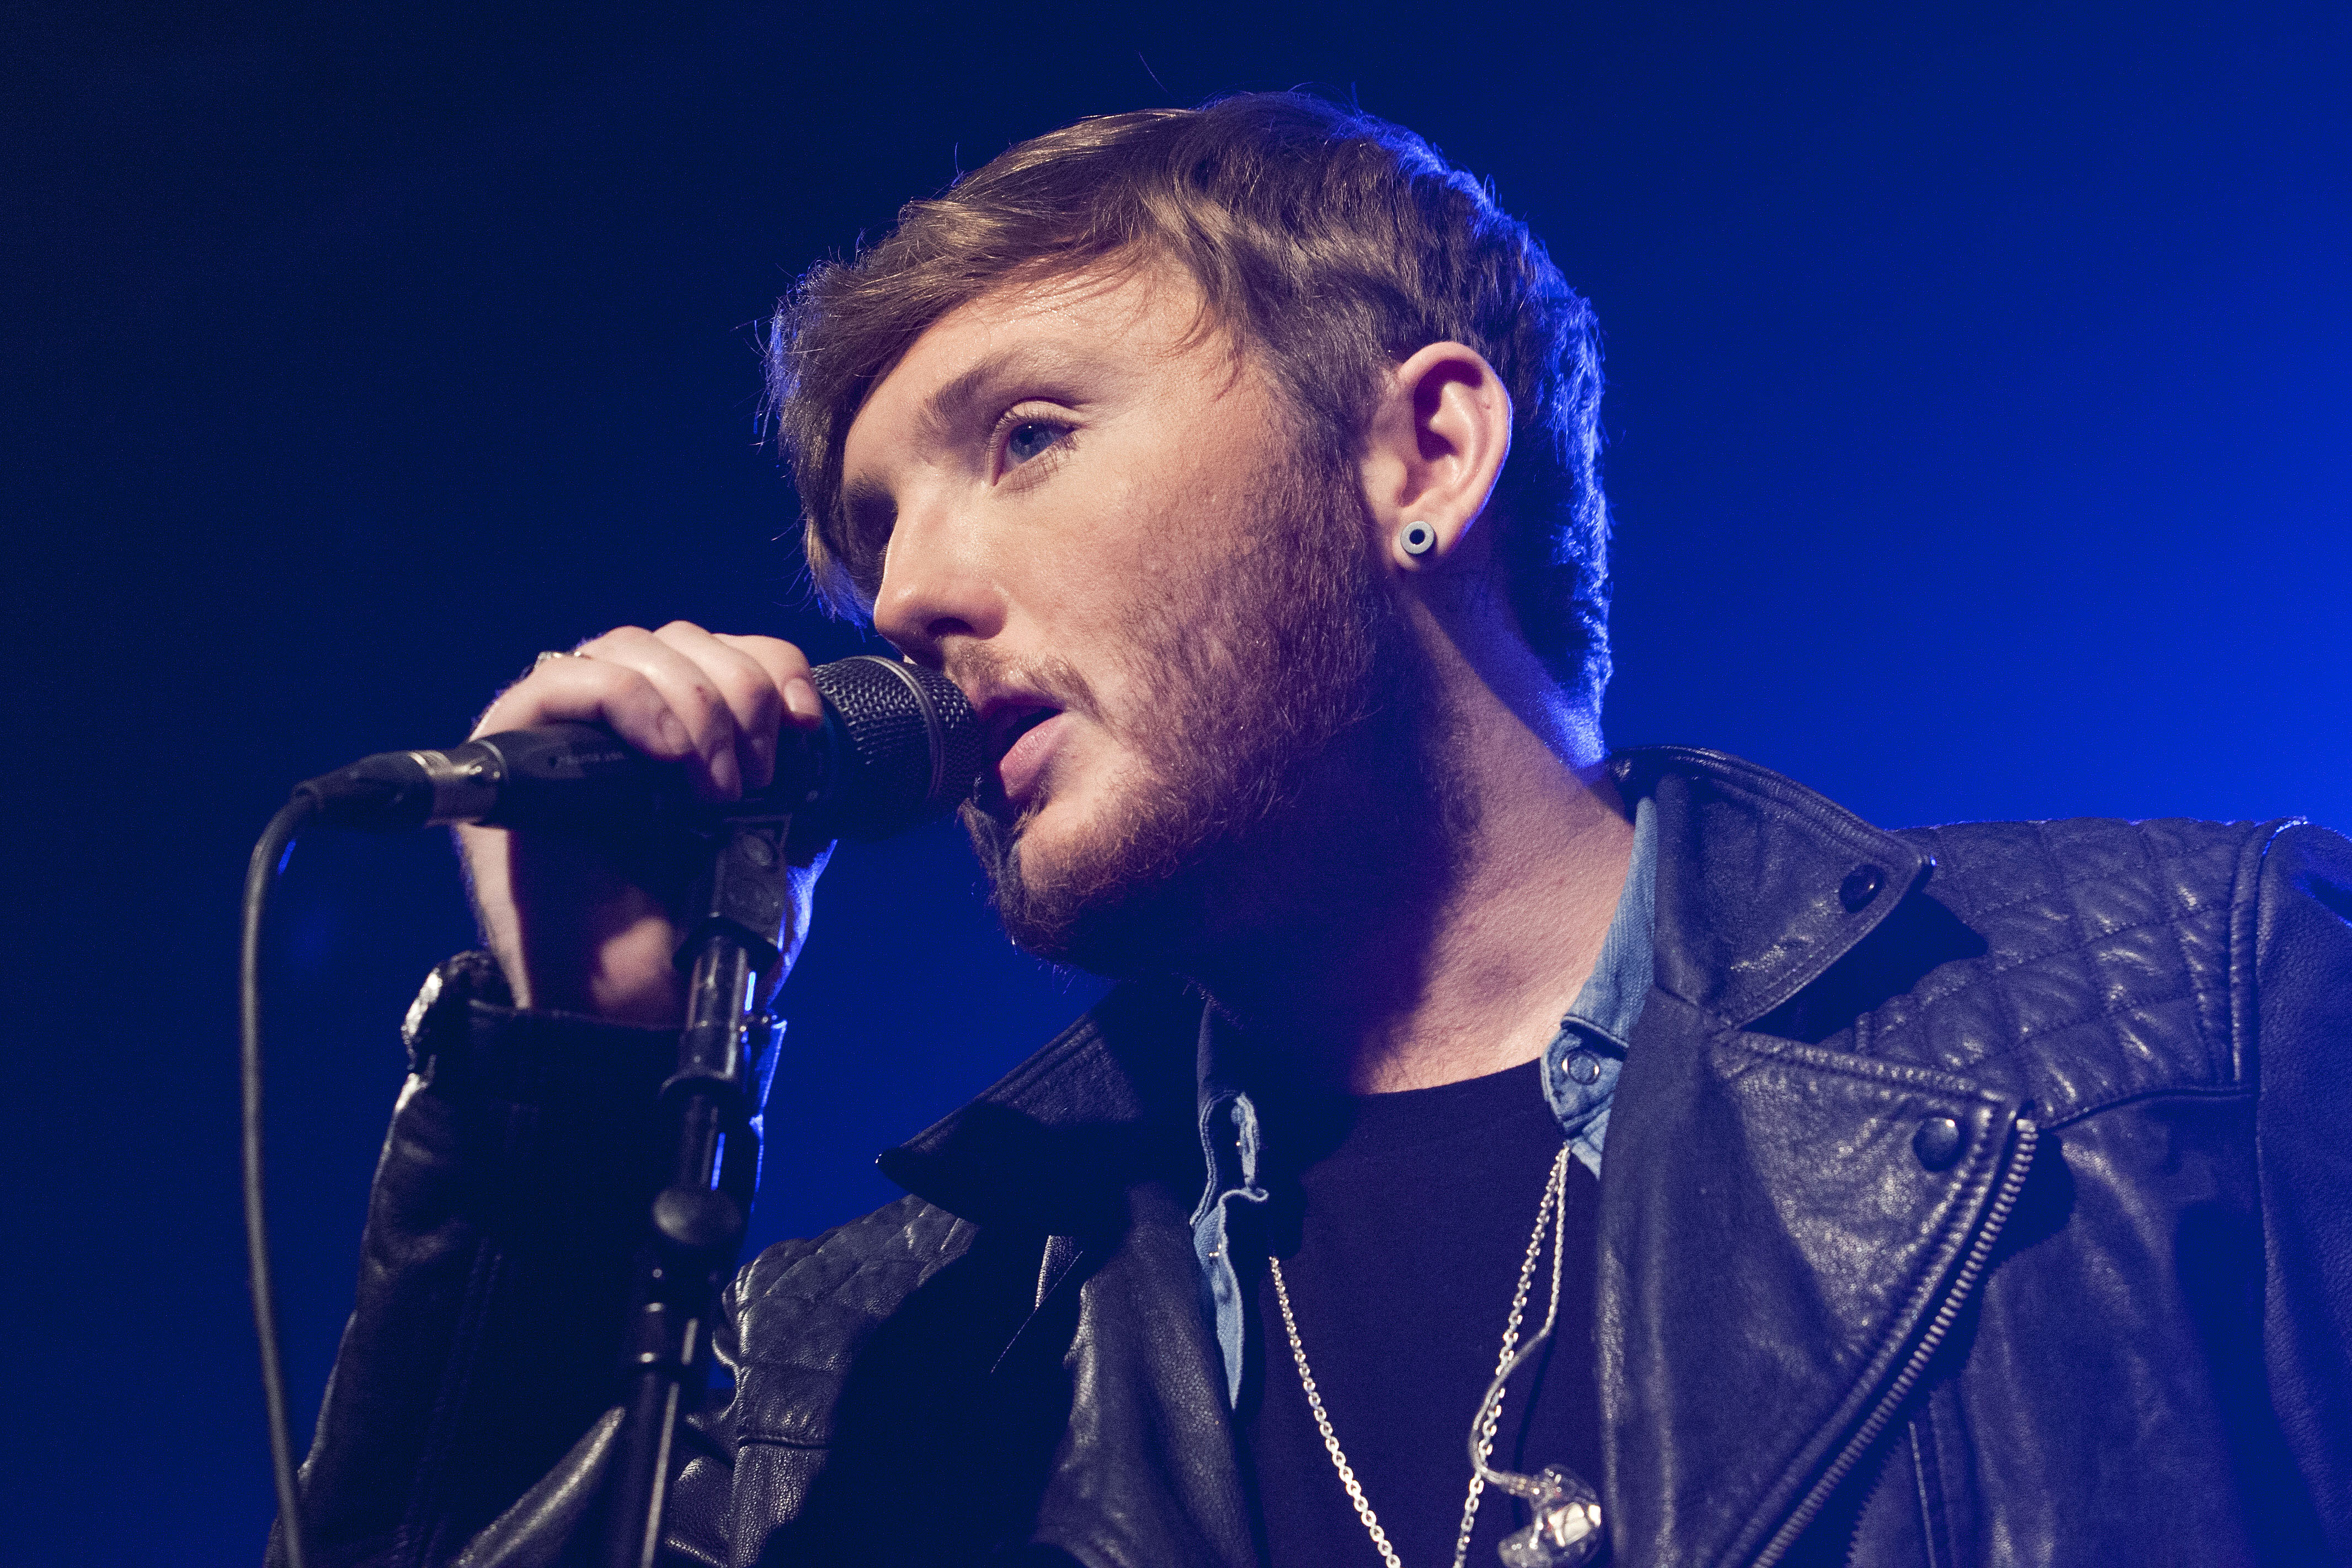 BERLIN, GERMANY - FEBRUARY 17: British singer James Arthur performs live during a concert at the Postbahnhof on February 17, 2014 in Berlin, Germany. (Photo by Frank Hoensch/Redferns via Getty Images)